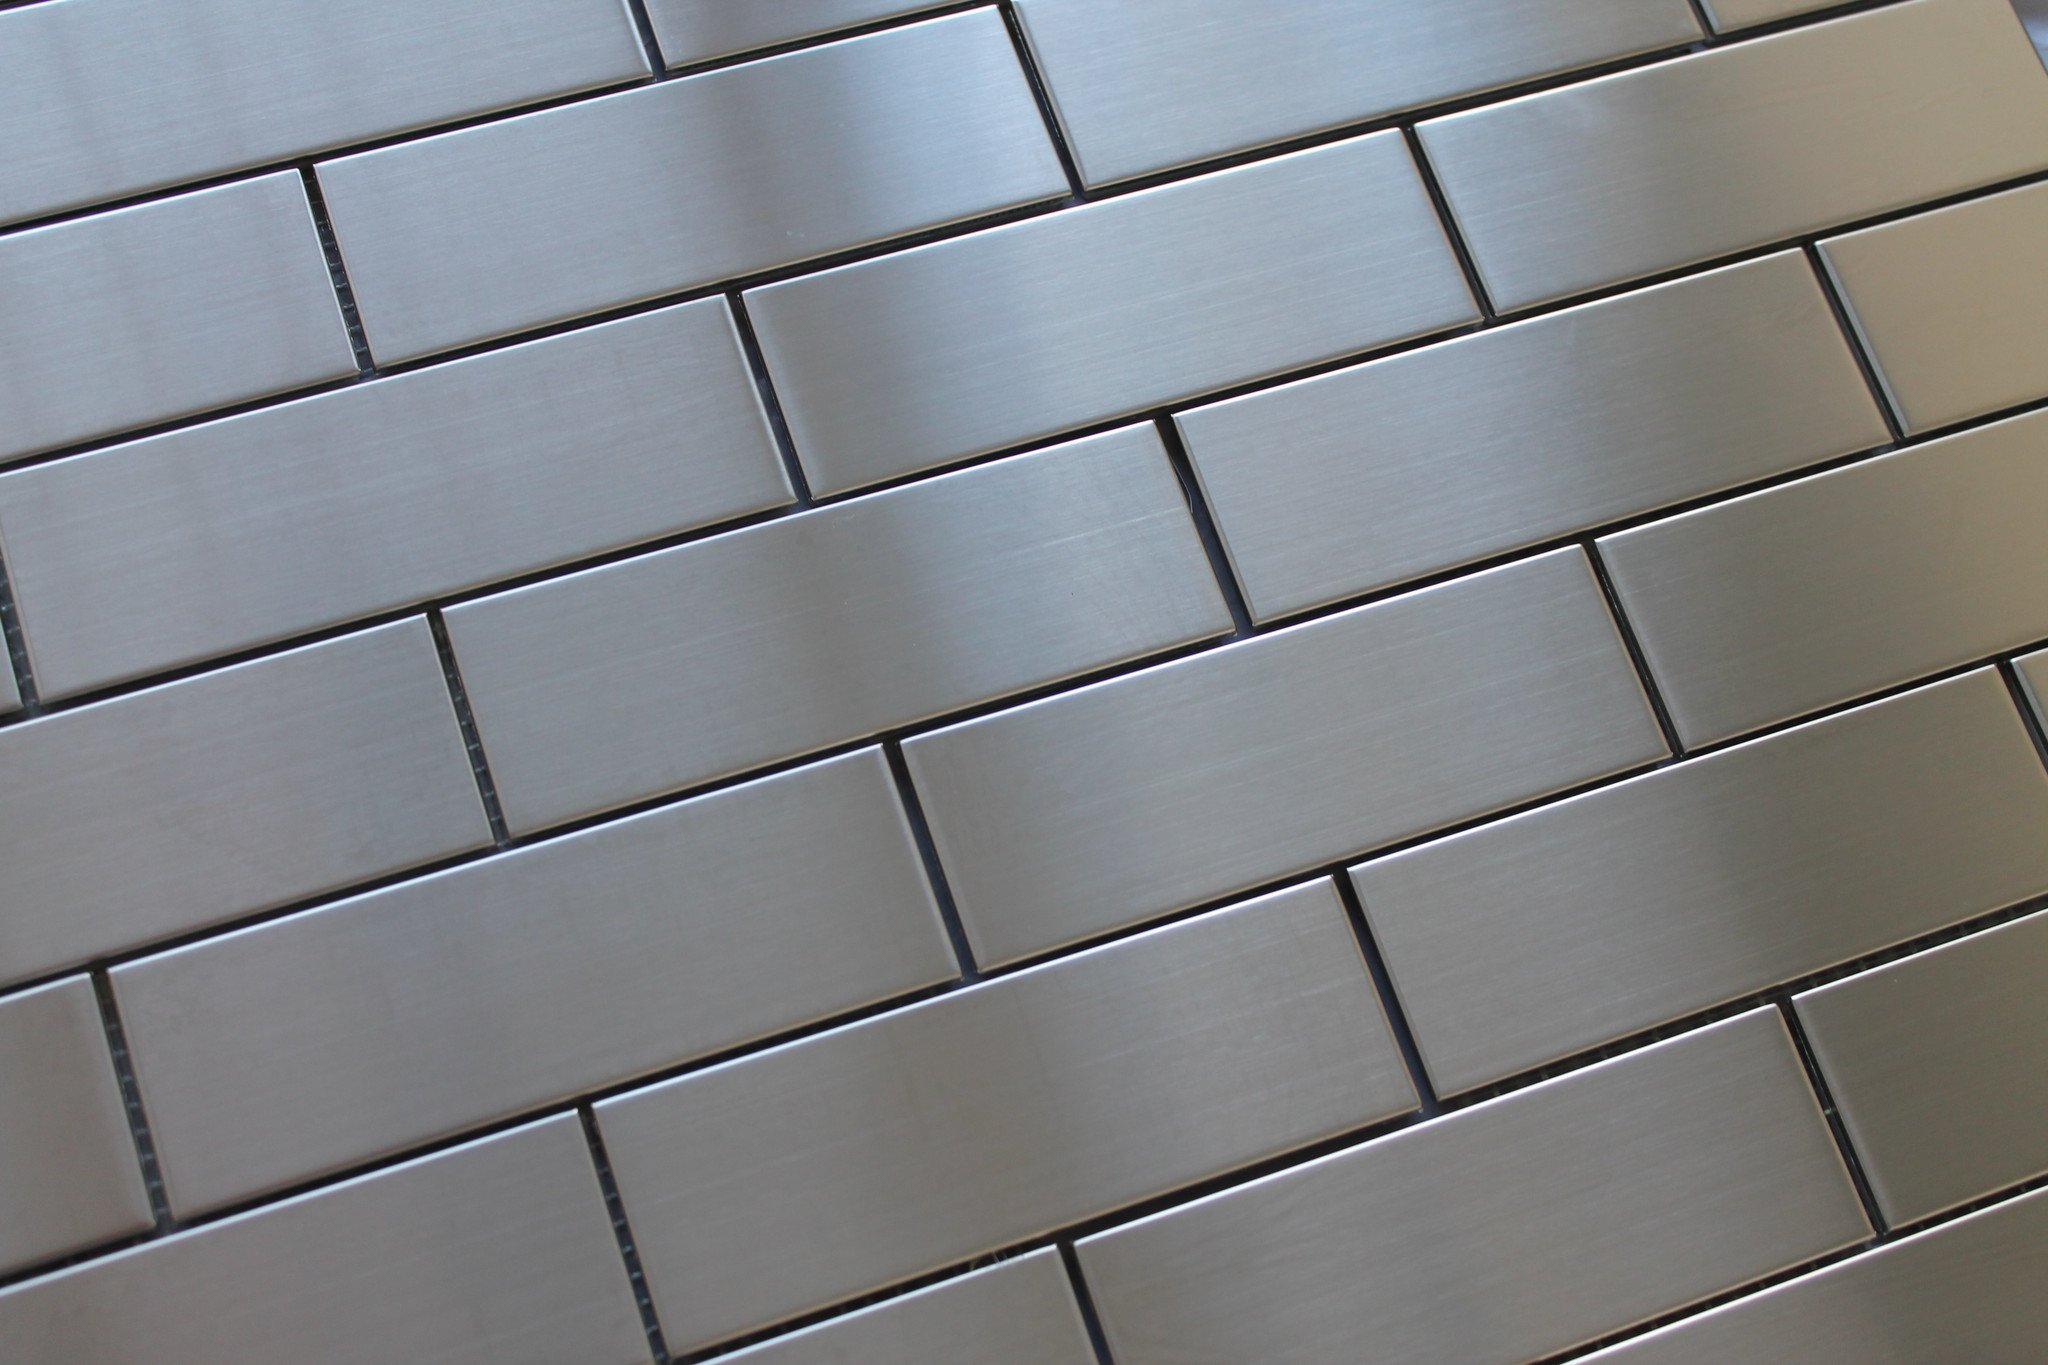 10 Square Feet - Stainless Steel 2x6 Brick Mosaic Tiles